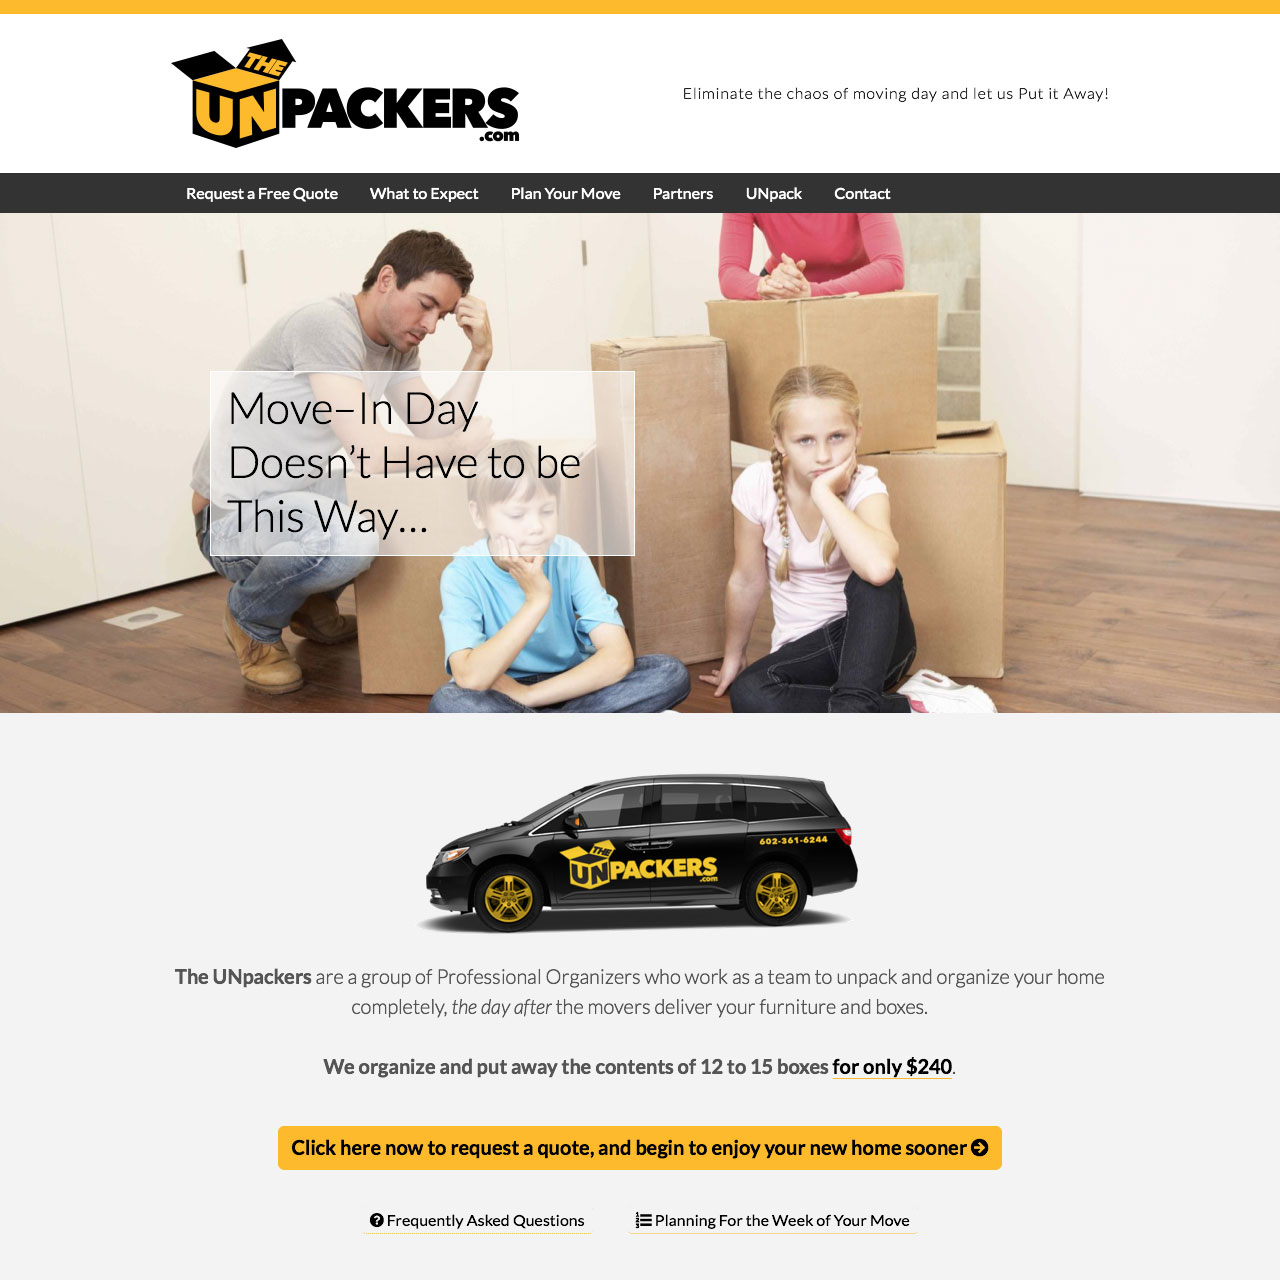 The UNpackers Homepage and Brand